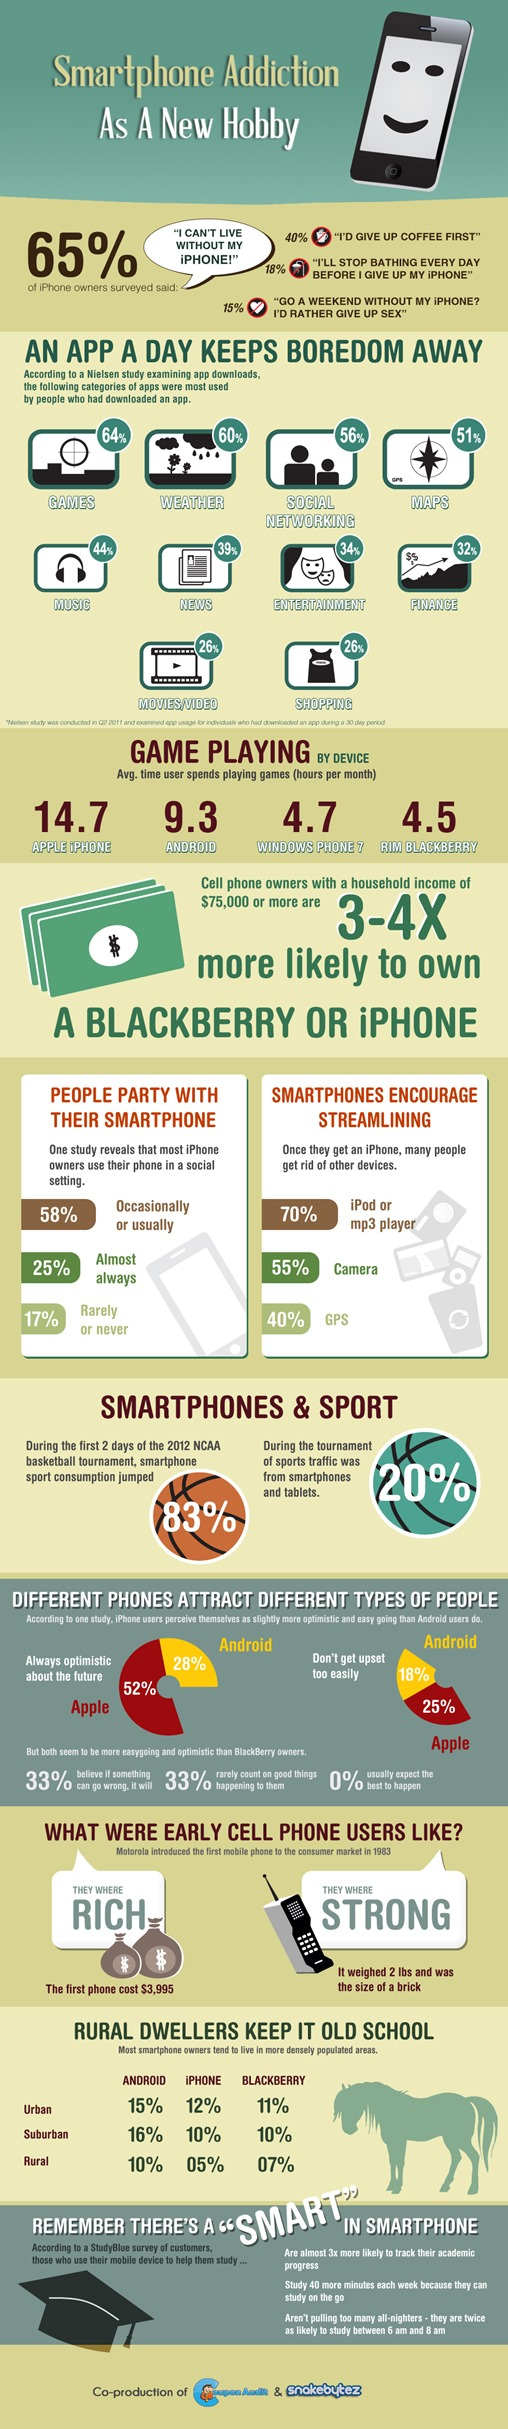 Smartphone-Addiction-As-A-New-Hobby